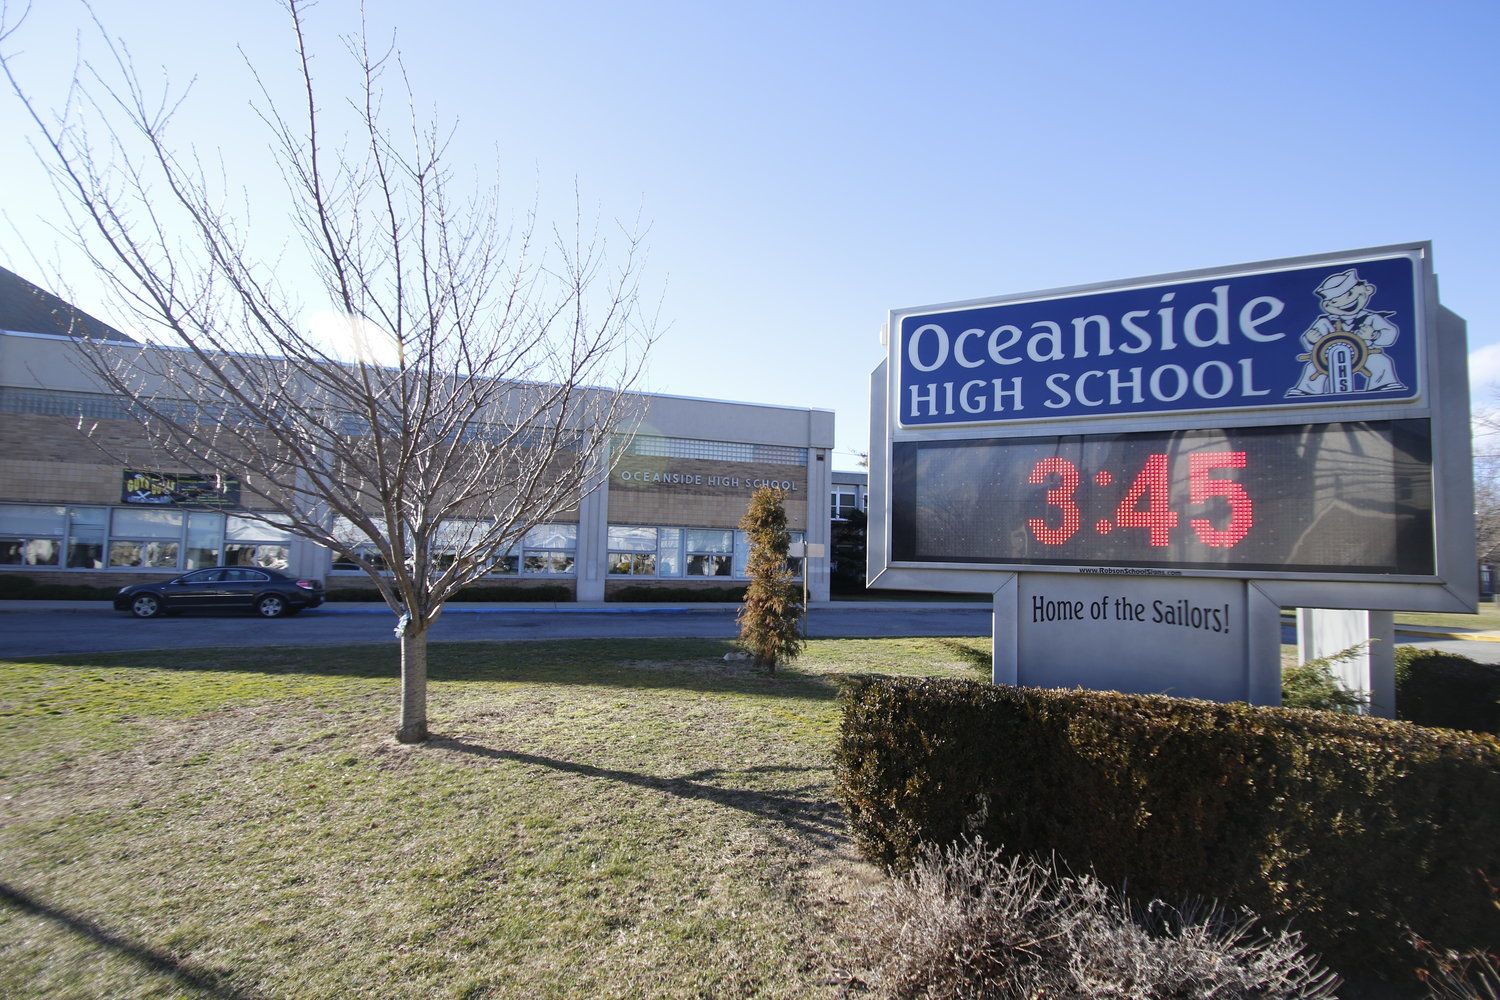 School administrators, elected officials and parents have raised concerns about dangerous intersections near Oceanside High School, and have requested a crossing guard, but the Nassau County Police Department does not station them at high schools.